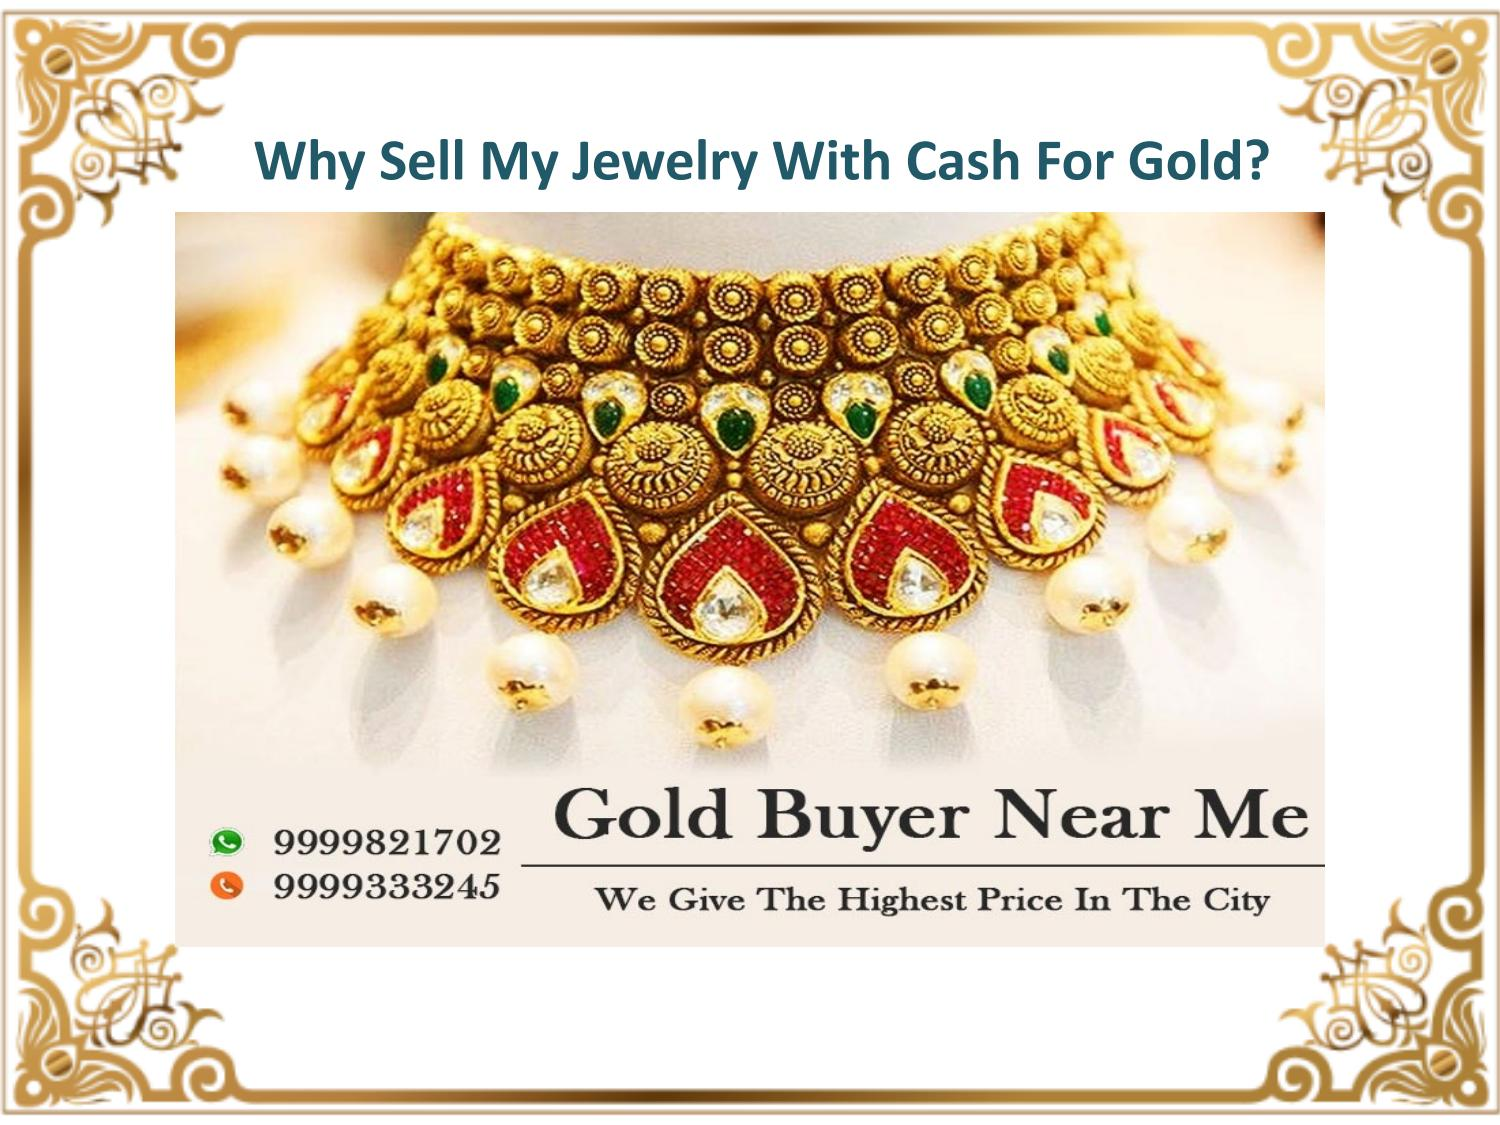 Why Sell My Jewelry With Cash For Gold? by ajaycashforgold17